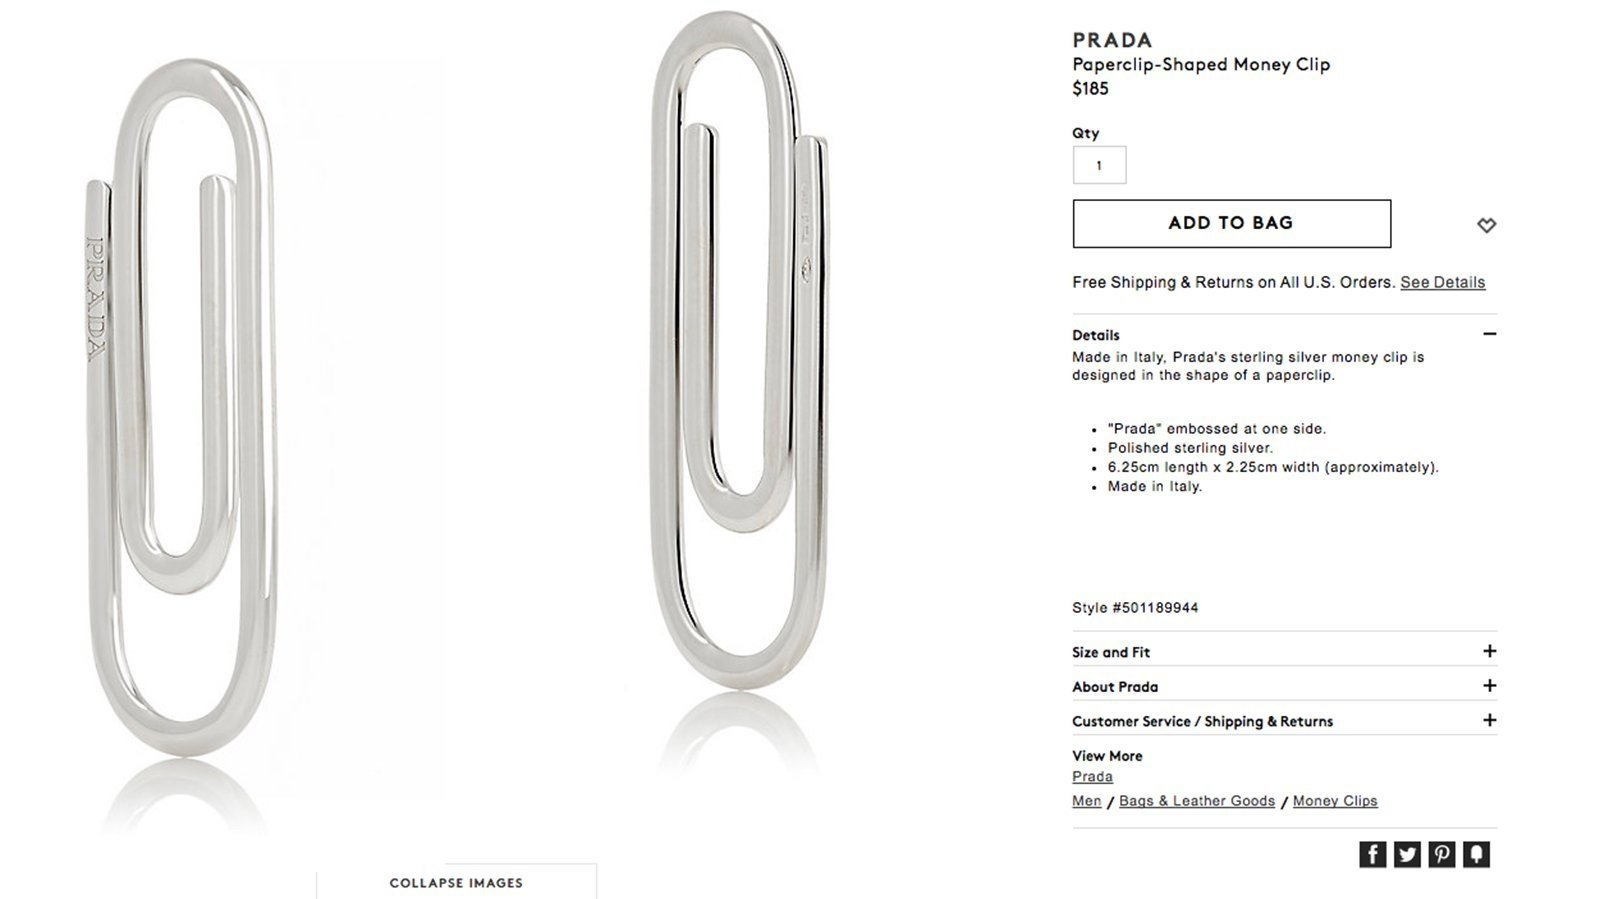 You can buy a $254 Prada paperclip, if you want